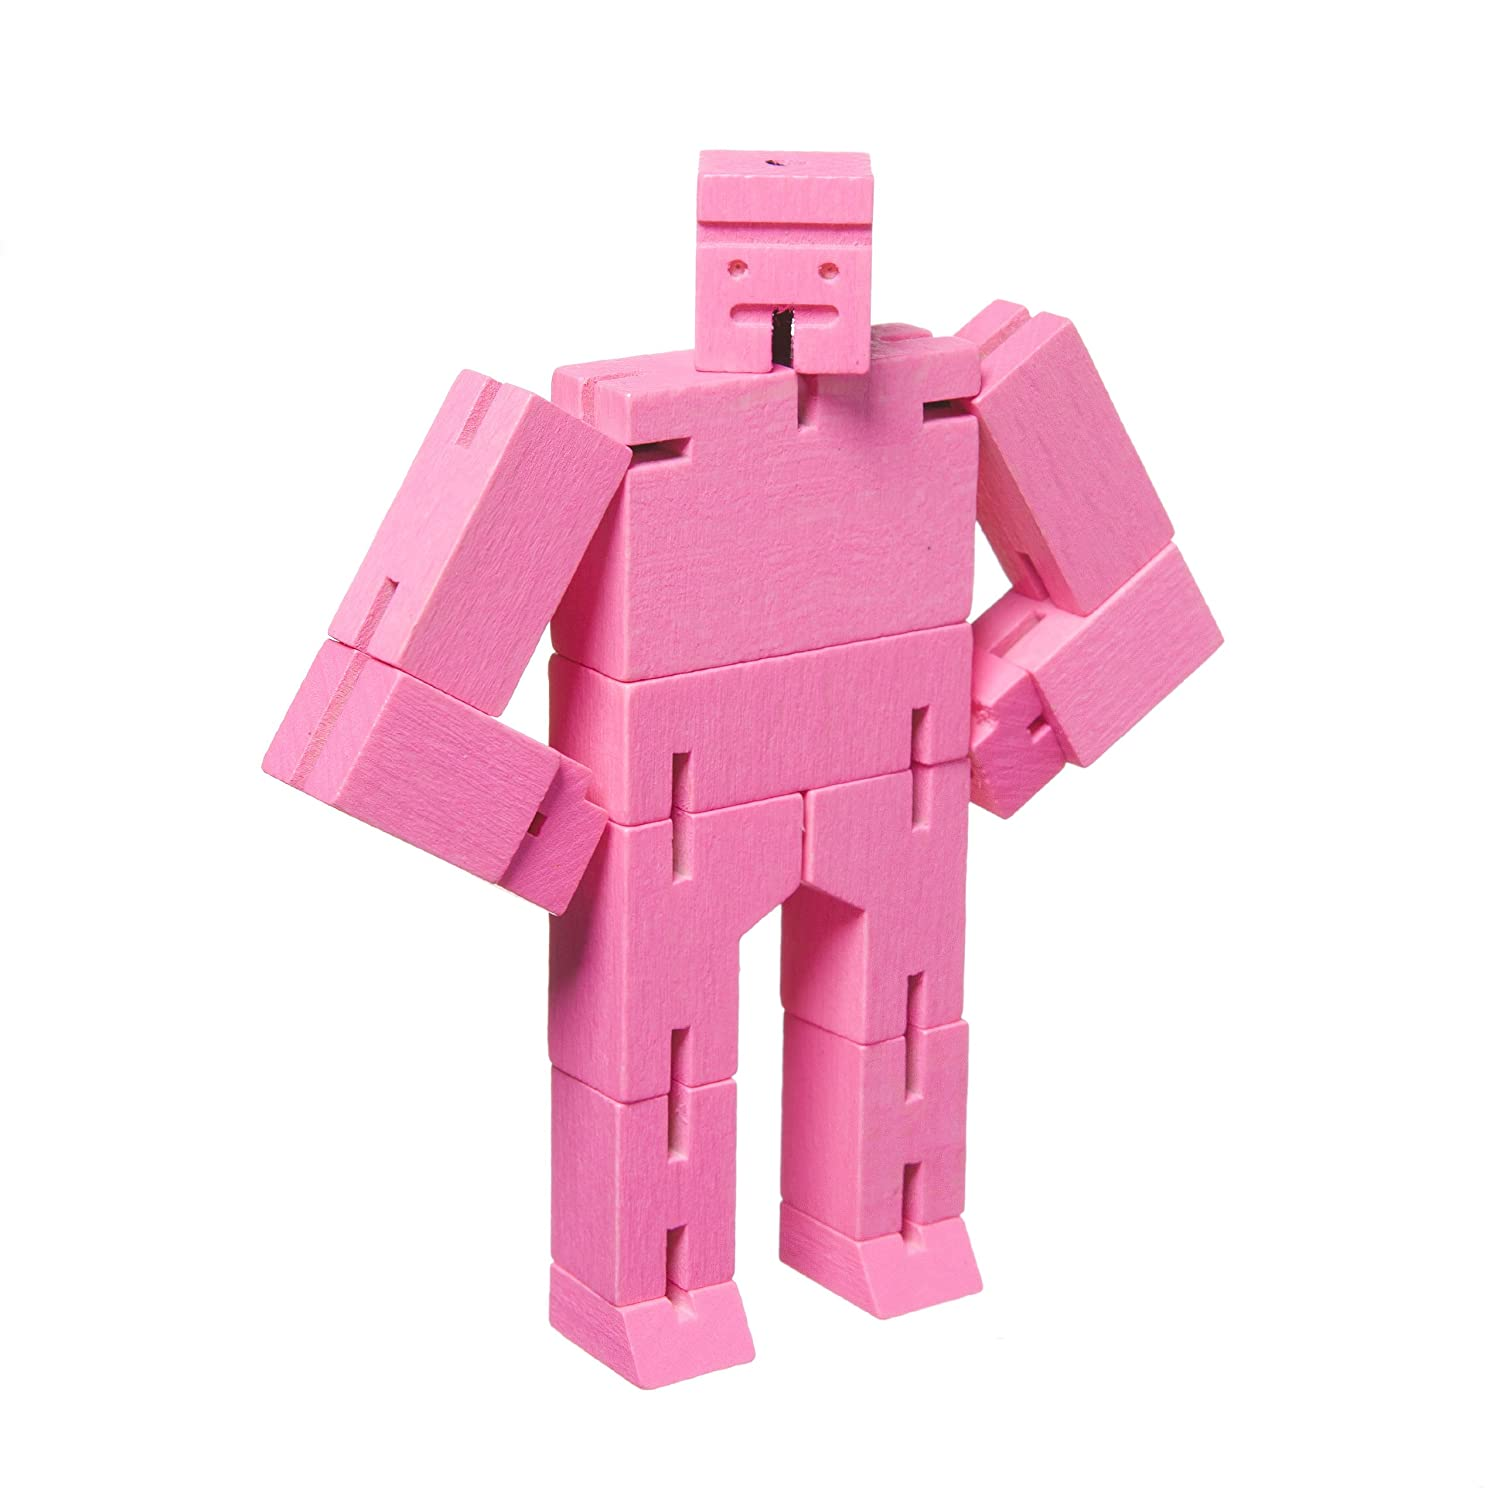 Micro Cubebot Brain Teaser Puzzle, Pink by Areaware: Amazon ...